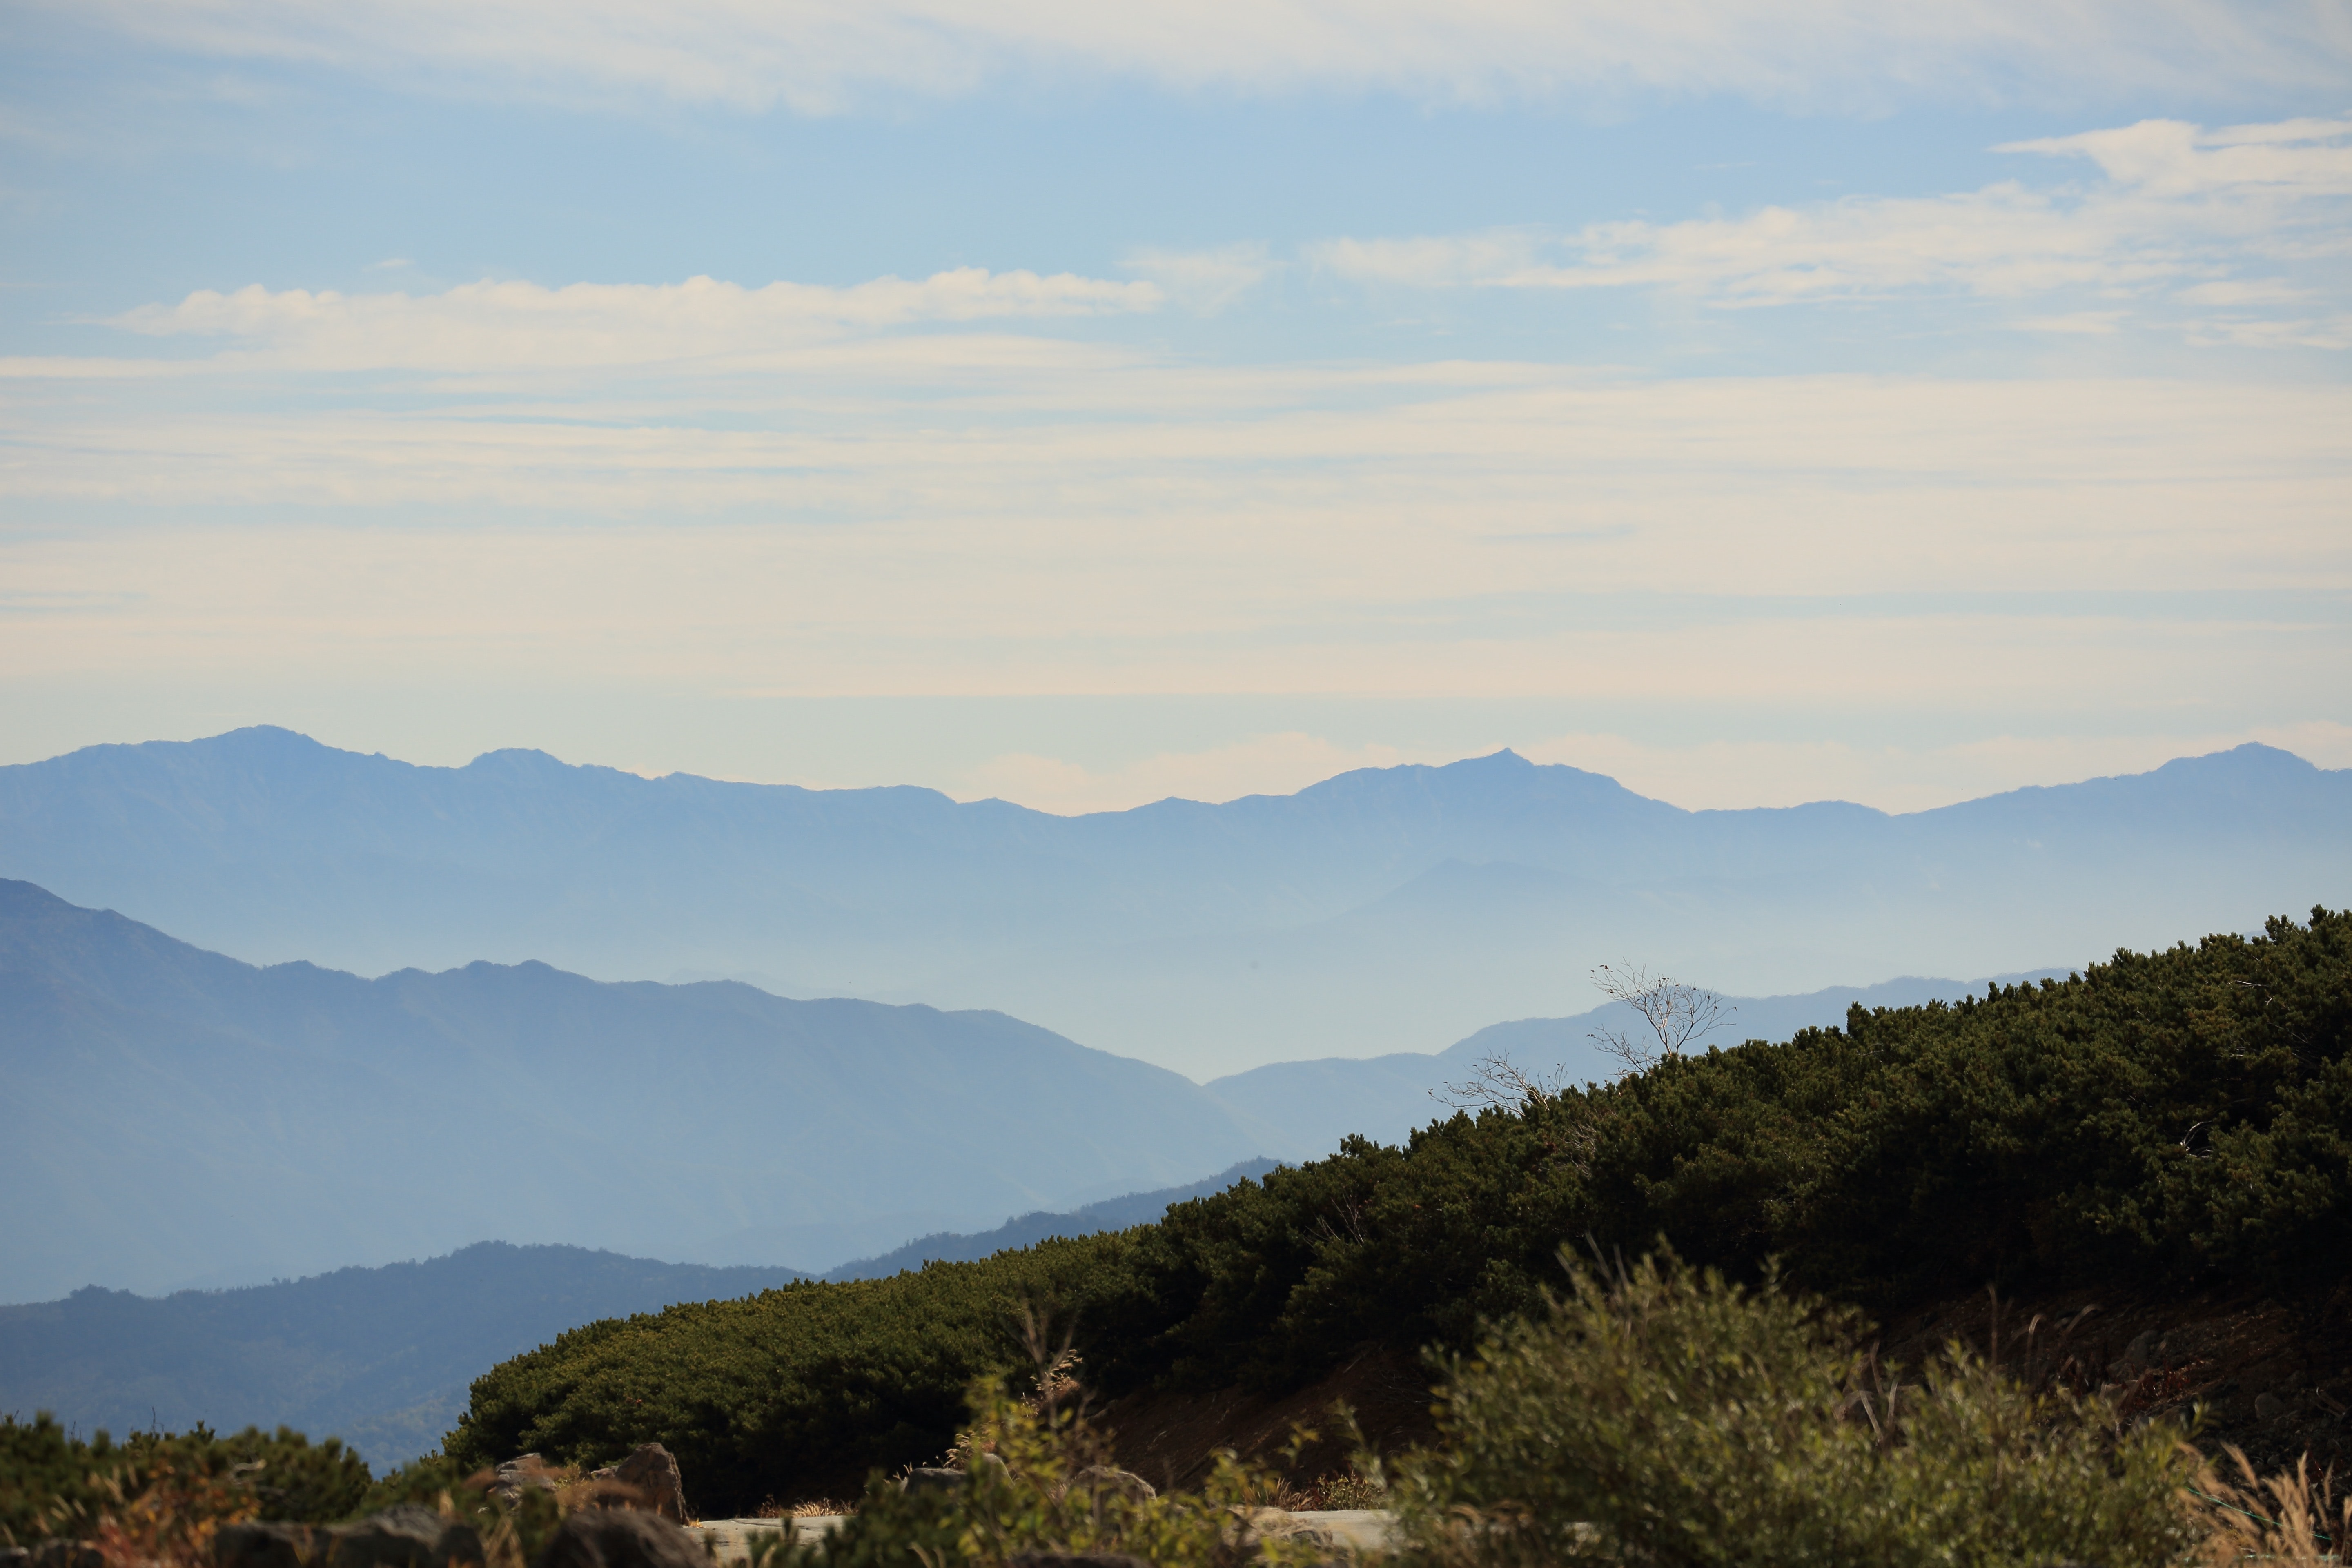 A view on the long silhouette of a long mountain range against a blue sky